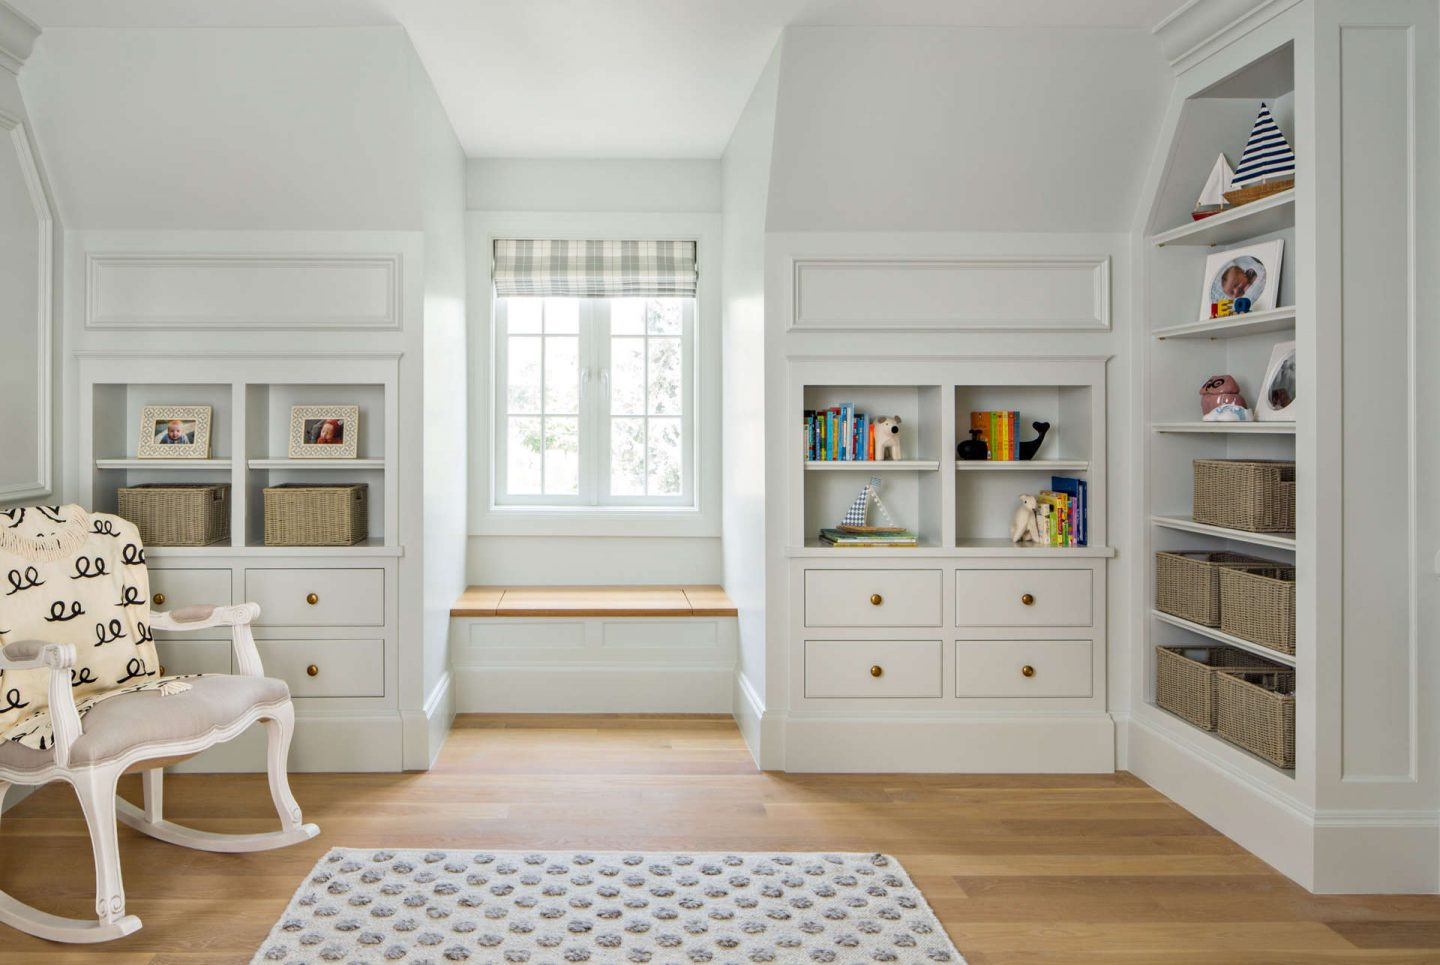 Built in cabinetry in a traditional style nursery. #thefoxgroup #nursery #traditional #builtins